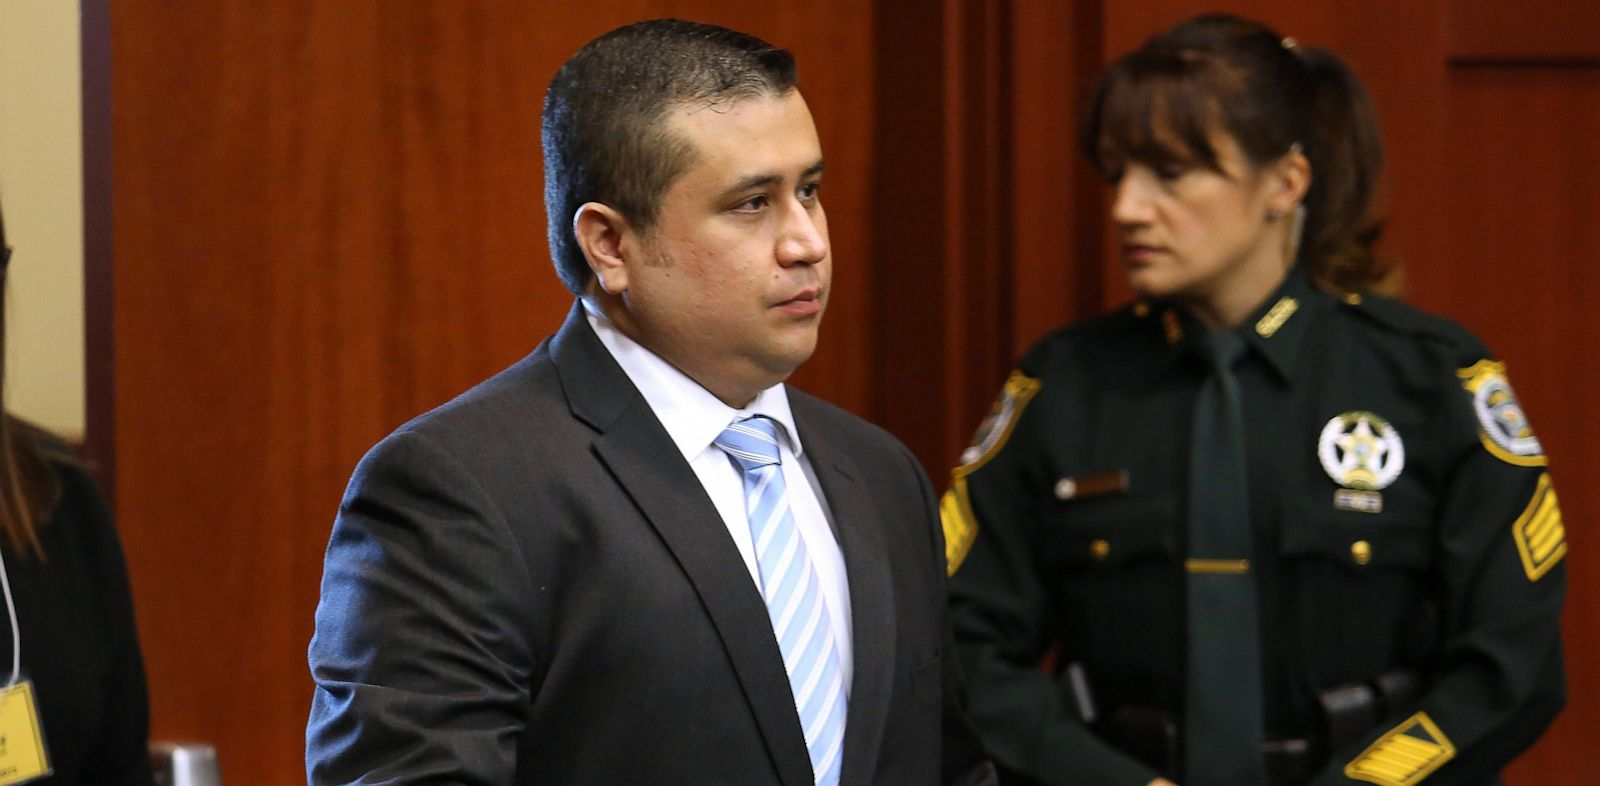 PHOTO: George Zimmerman arrives for the 16th day of his trial in Seminole circuit court, in Sanford, Fla., July 1, 2013.